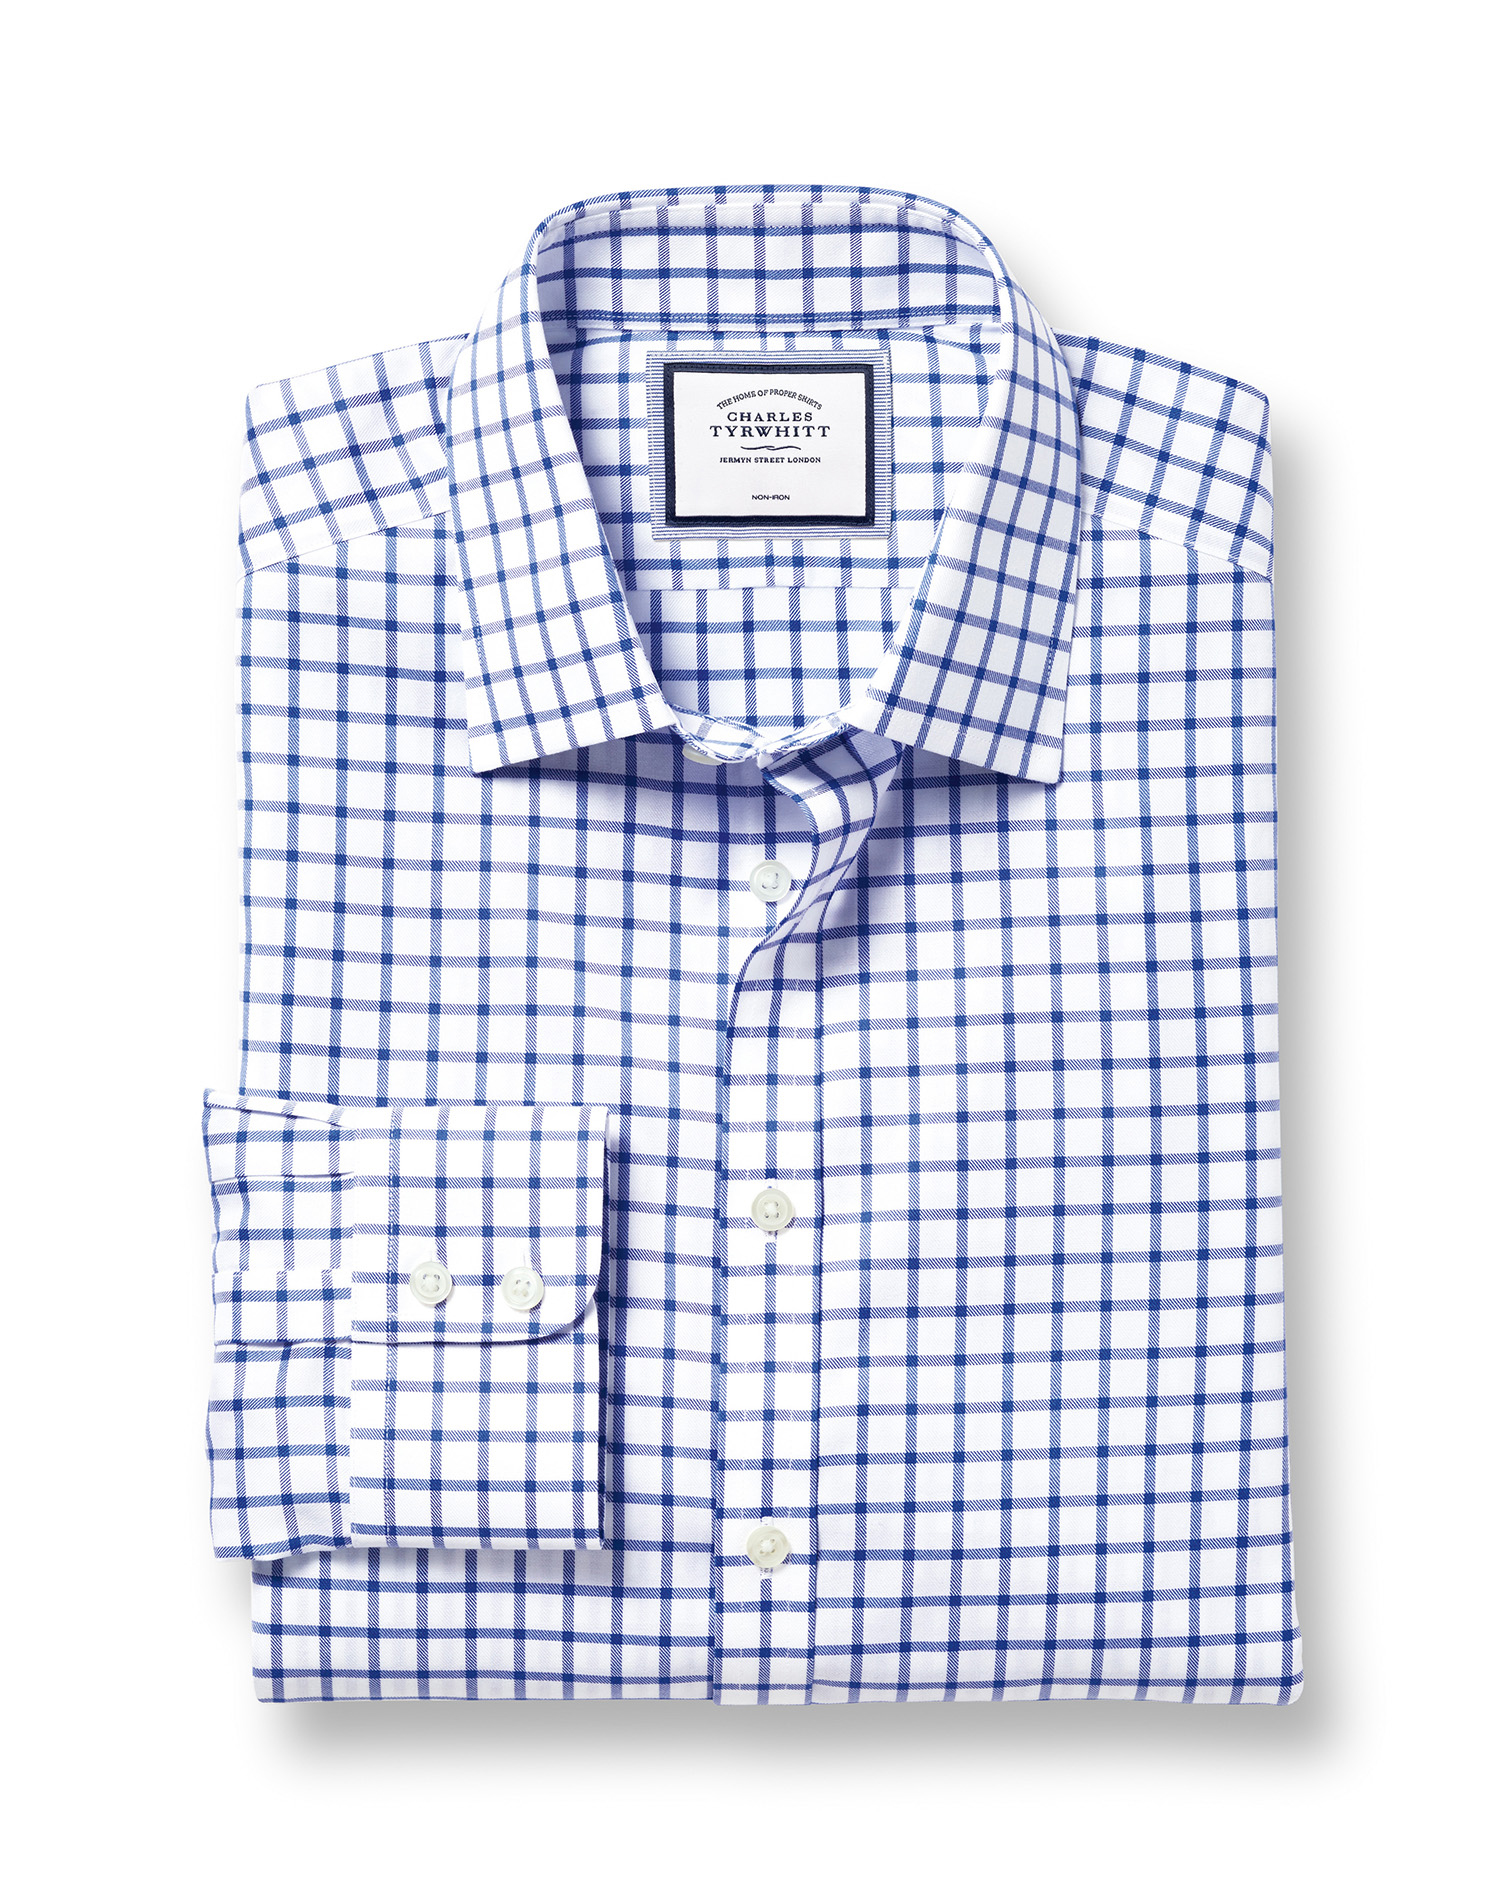 Cotton Classic Collar Non-Iron Twill Grid Check Shirt - Royal Blue